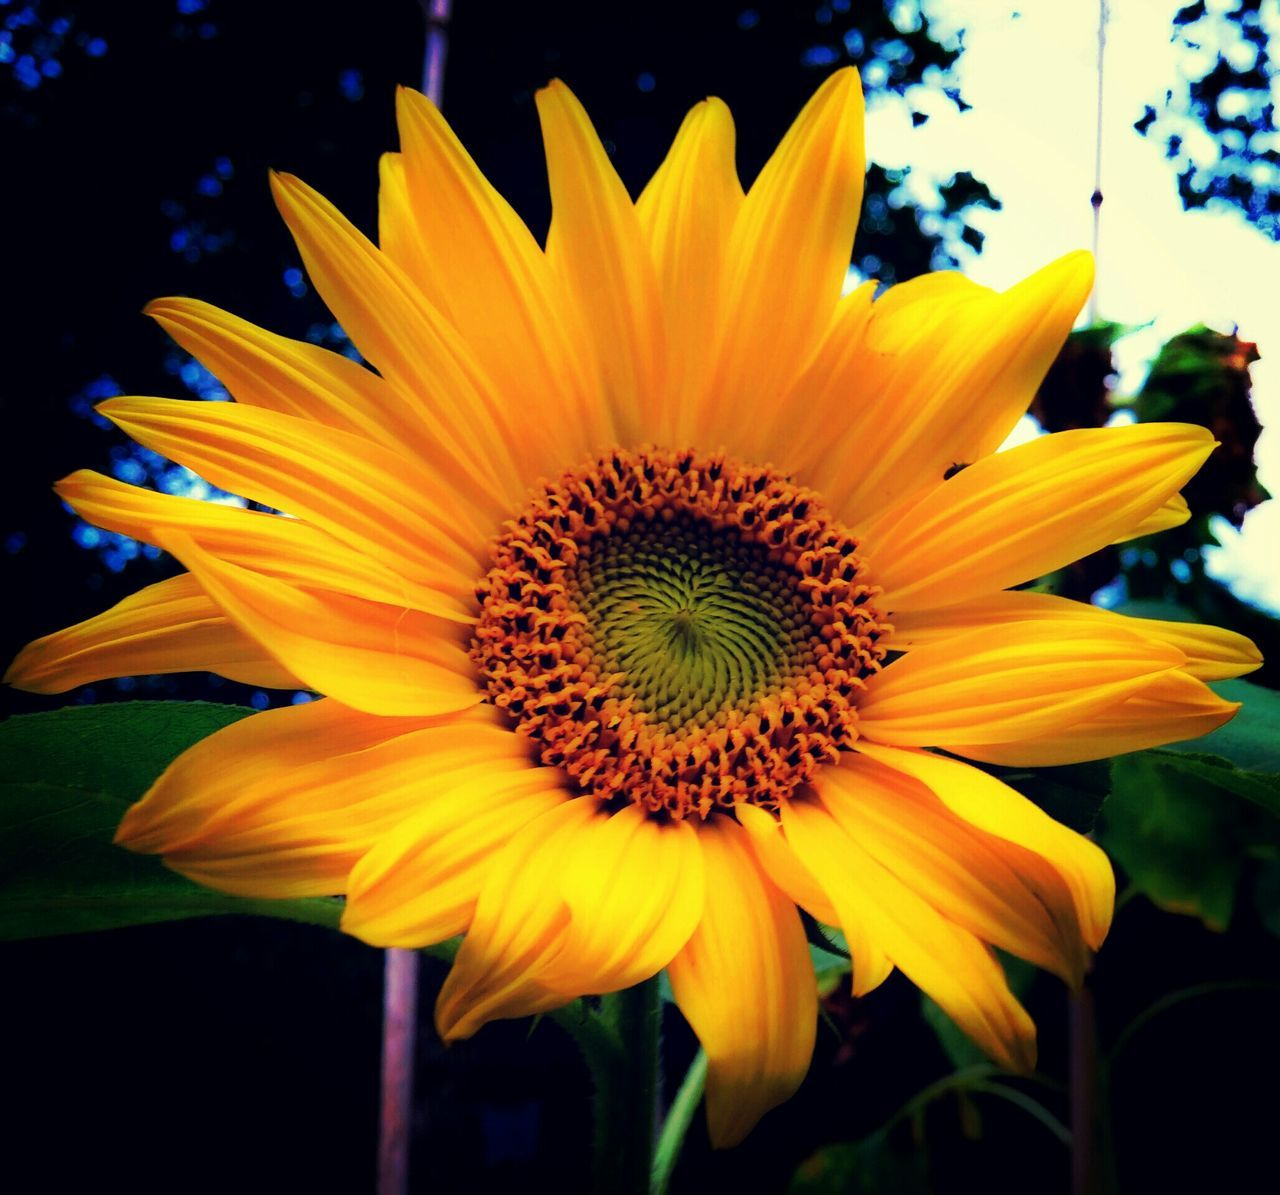 flower, yellow, petal, beauty in nature, fragility, flower head, nature, growth, freshness, plant, no people, vibrant color, outdoors, close-up, blooming, gazania, day, sunflower